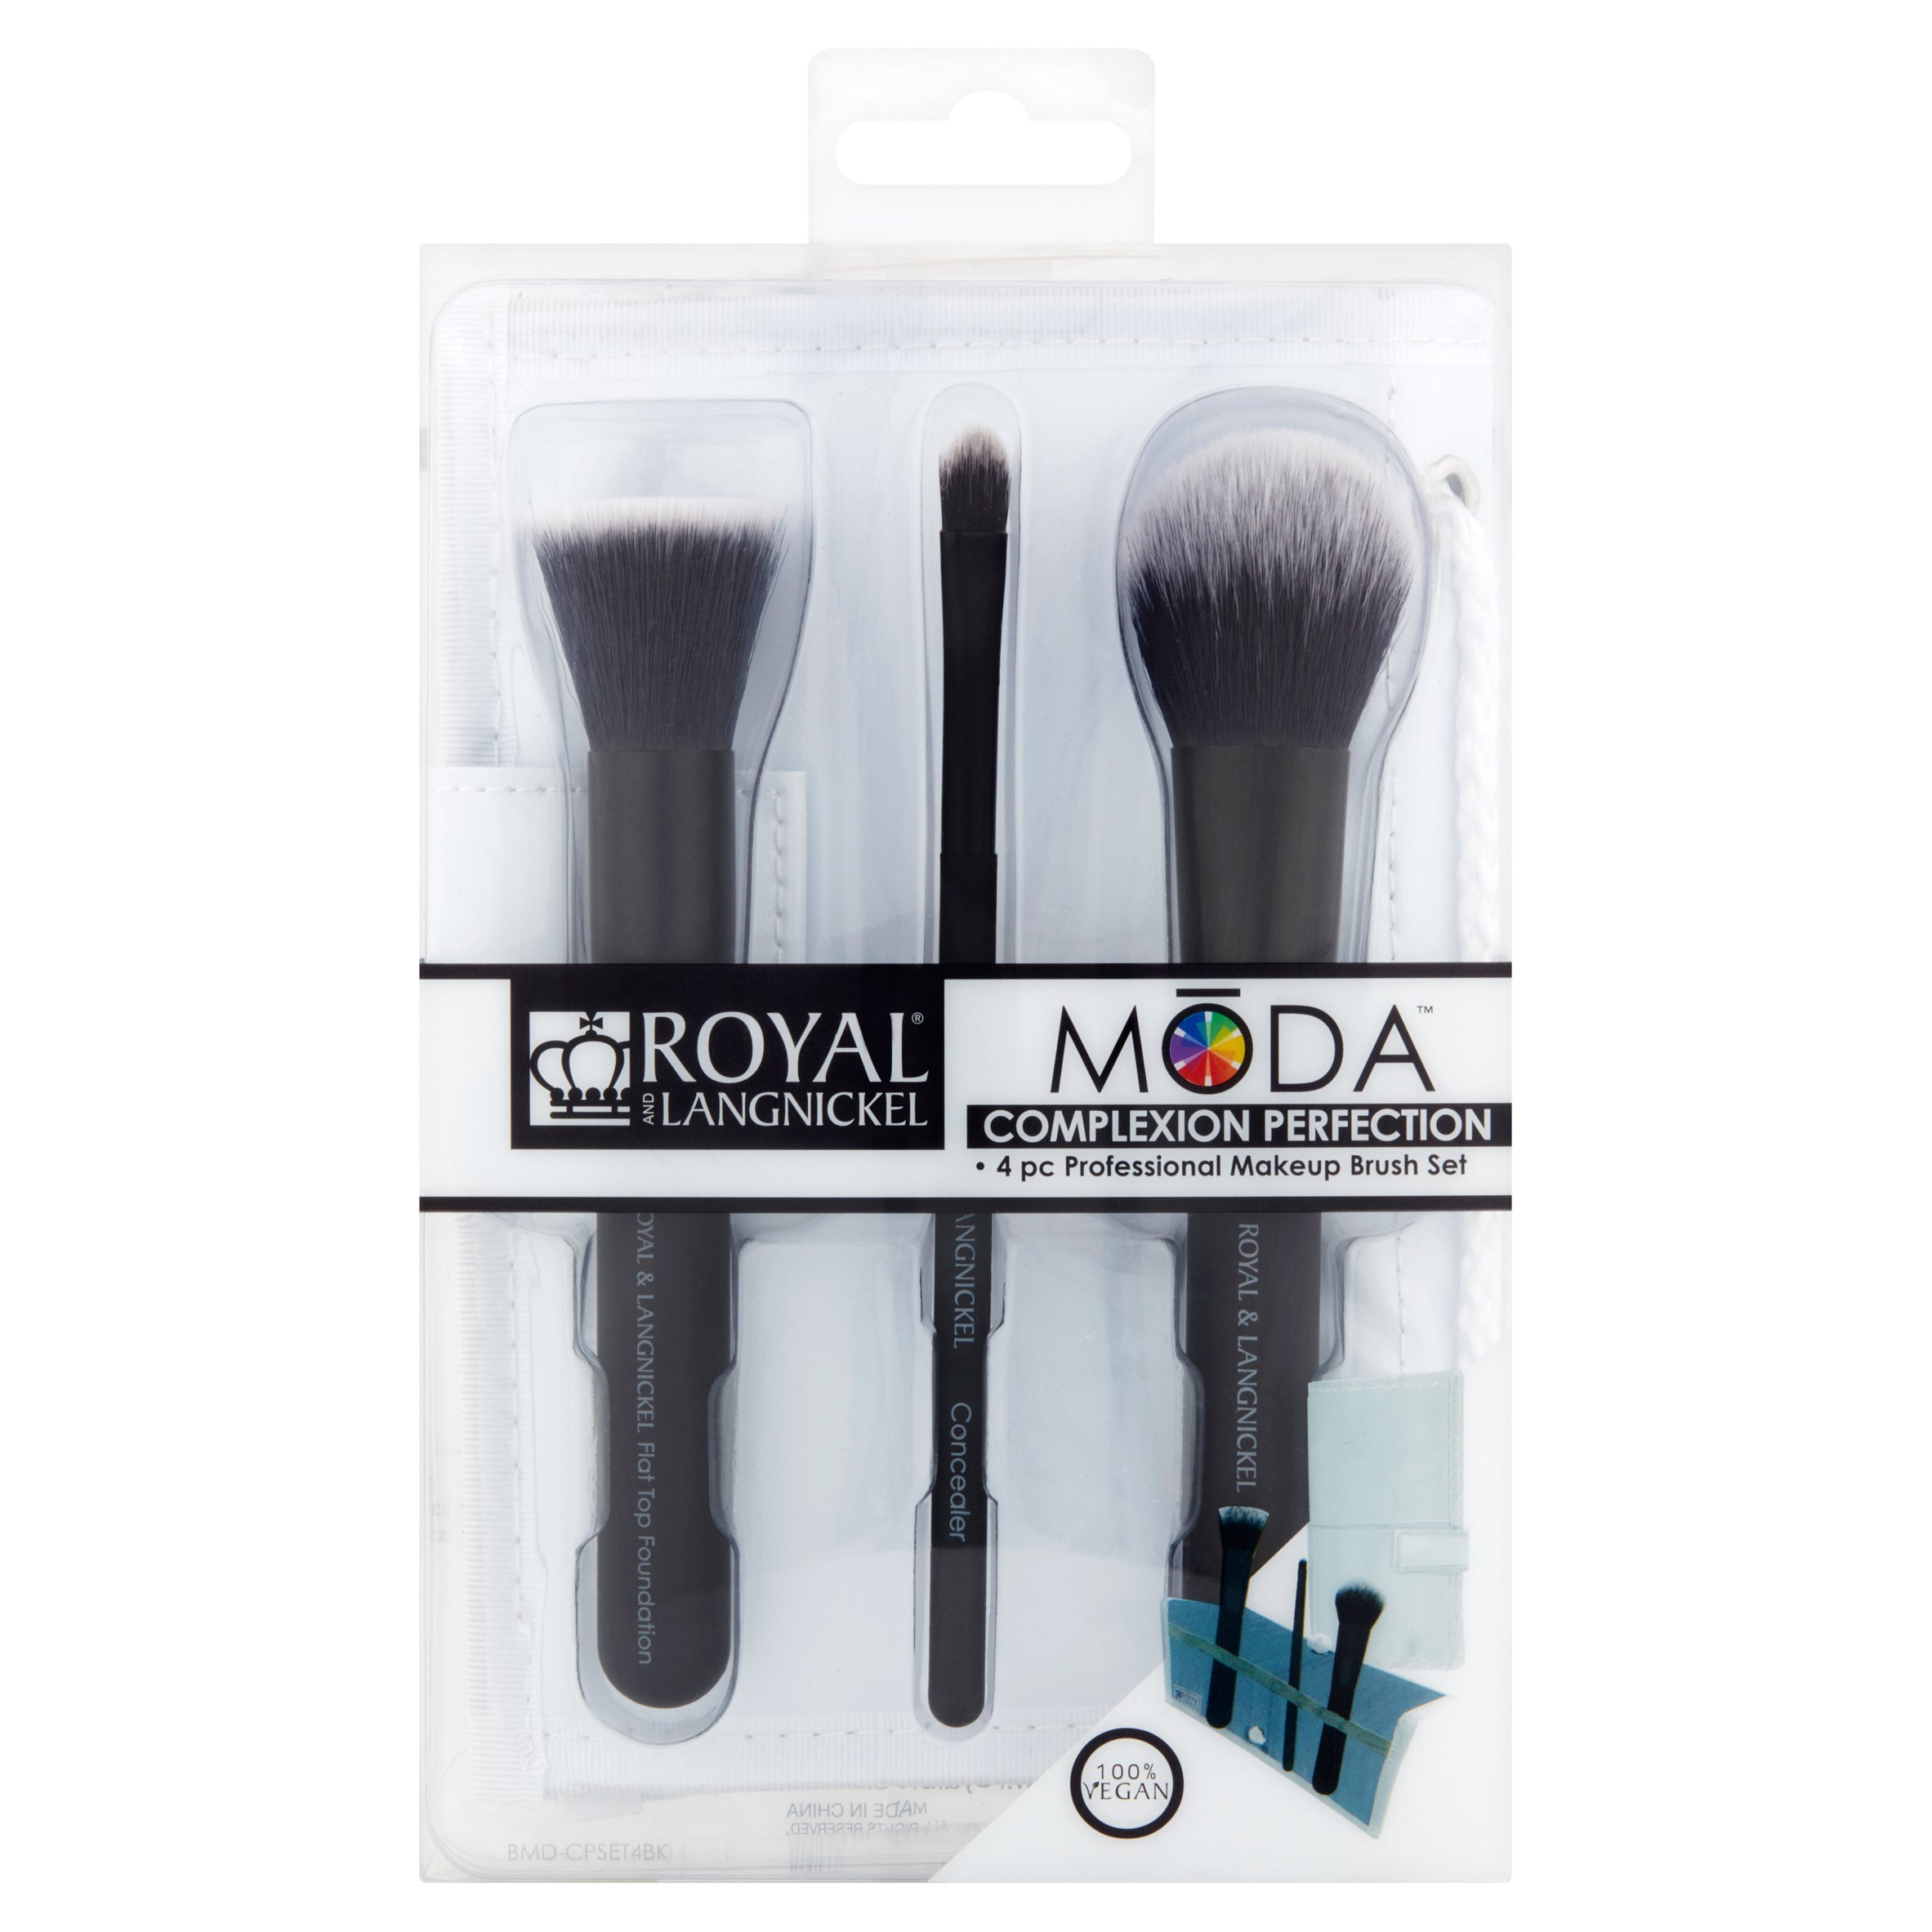 Royal and Langnickel Mōda Complexion Perfection Professional Makeup Brush Set